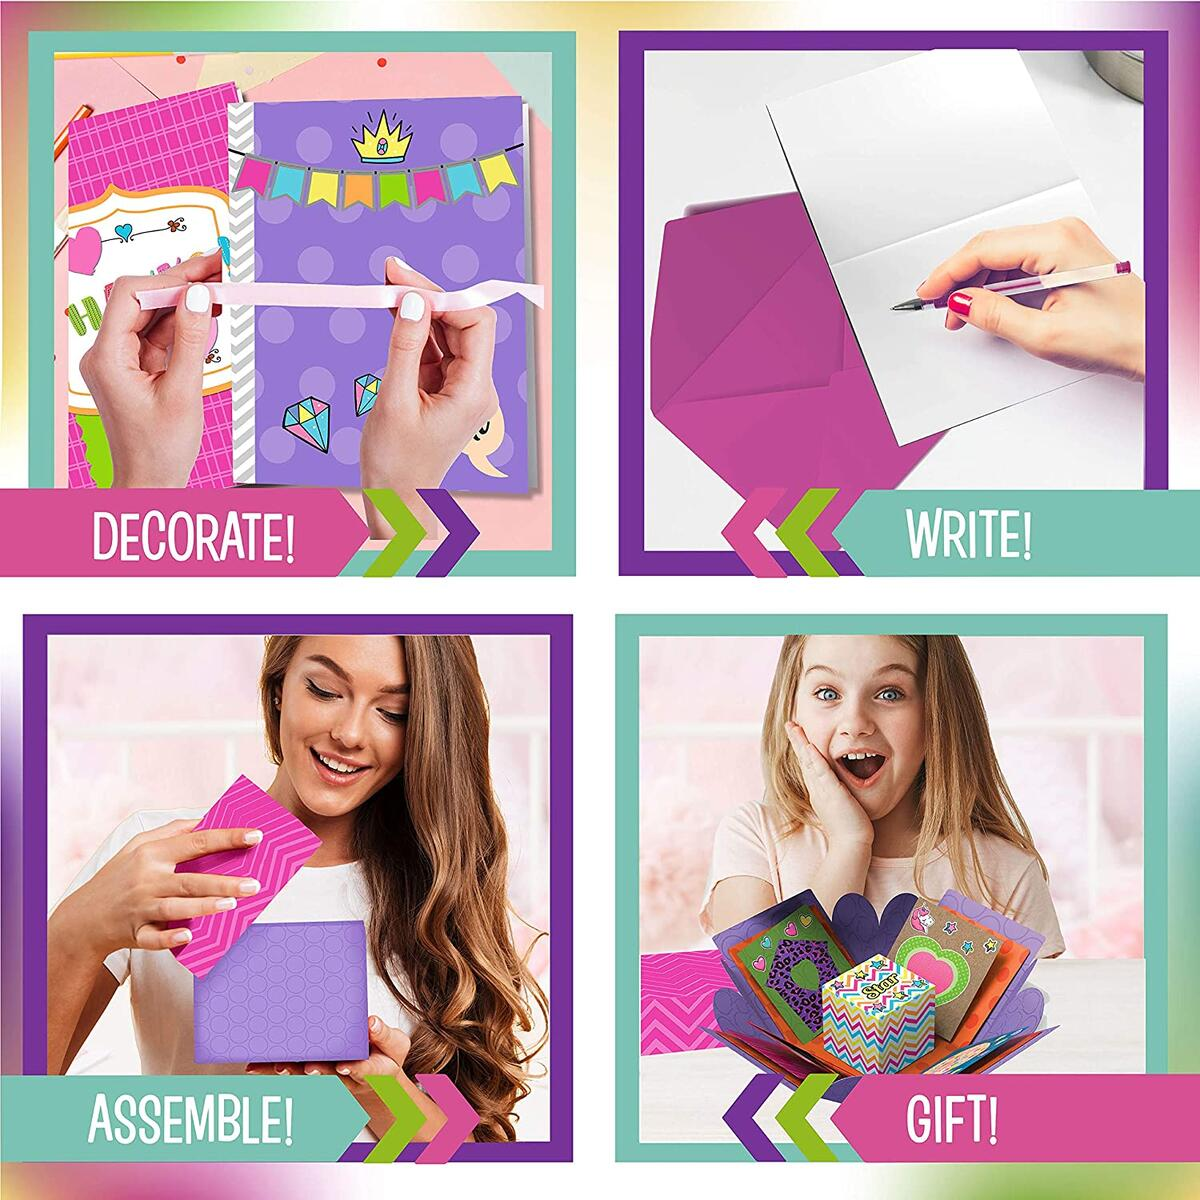 Card Crafting Explosion Arts and Crafts Box - Make Your Own Card Crafts for Boys and Girls Age 6+